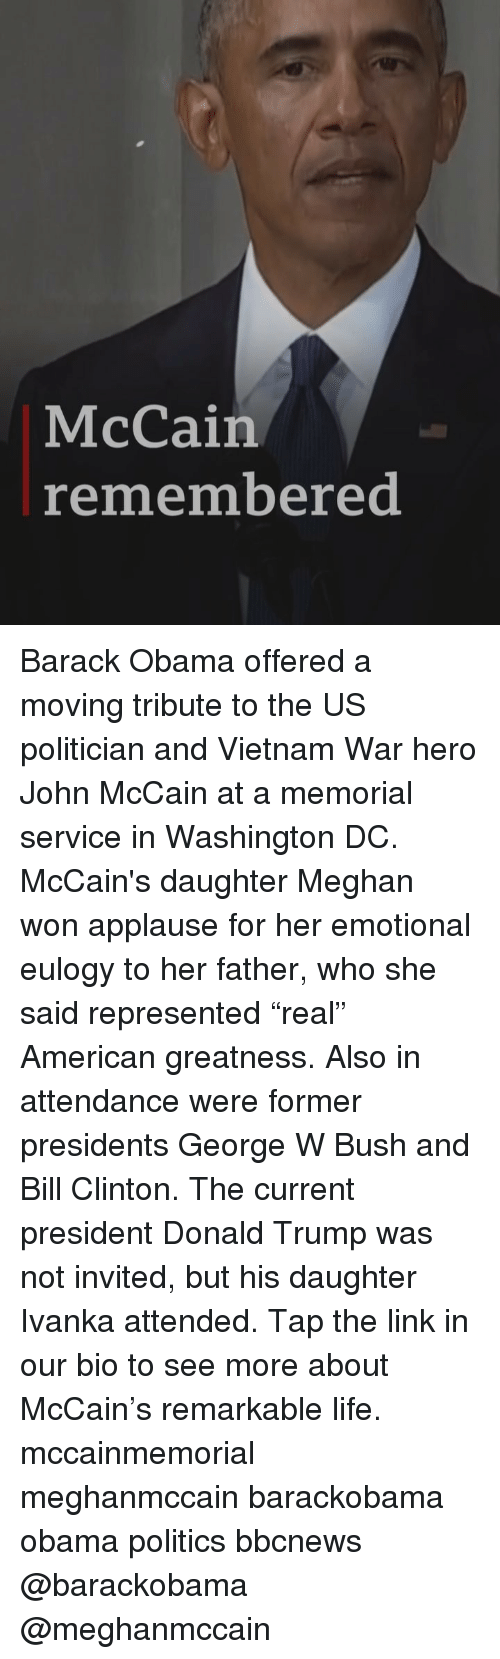 """Ivanka: McCain  remembered Barack Obama offered a moving tribute to the US politician and Vietnam War hero John McCain at a memorial service in Washington DC. McCain's daughter Meghan won applause for her emotional eulogy to her father, who she said represented """"real"""" American greatness. Also in attendance were former presidents George W Bush and Bill Clinton. The current president Donald Trump was not invited, but his daughter Ivanka attended. Tap the link in our bio to see more about McCain's remarkable life. mccainmemorial meghanmccain barackobama obama politics bbcnews @barackobama @meghanmccain"""